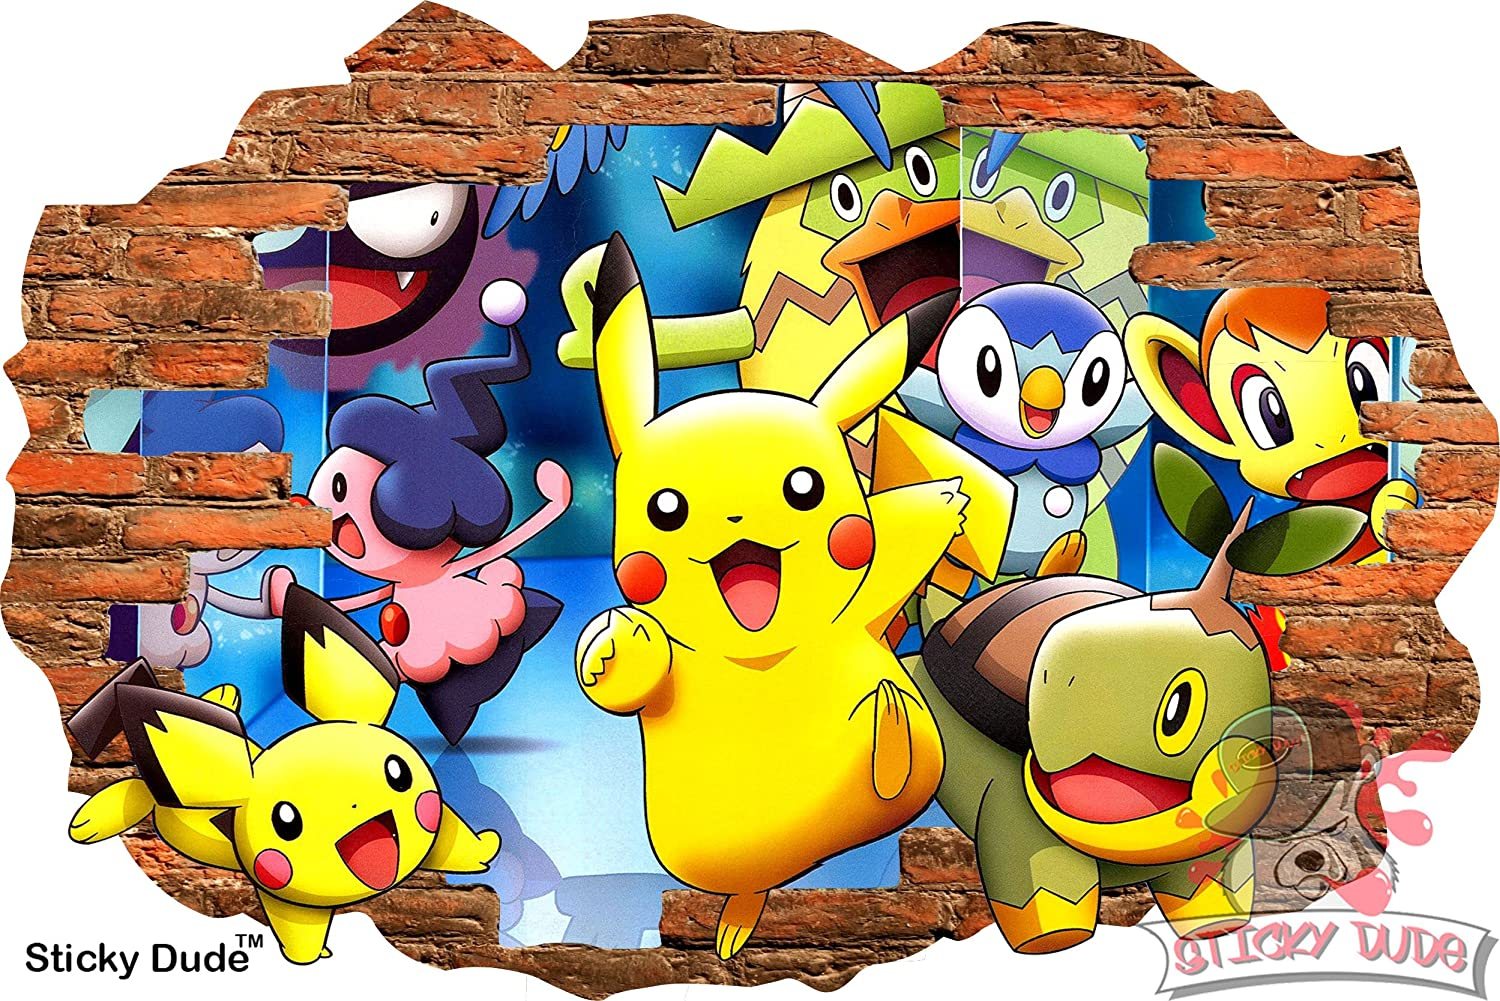 Amazon.com: 3D Effect Pokemon and Friends Decal - High resolution ...